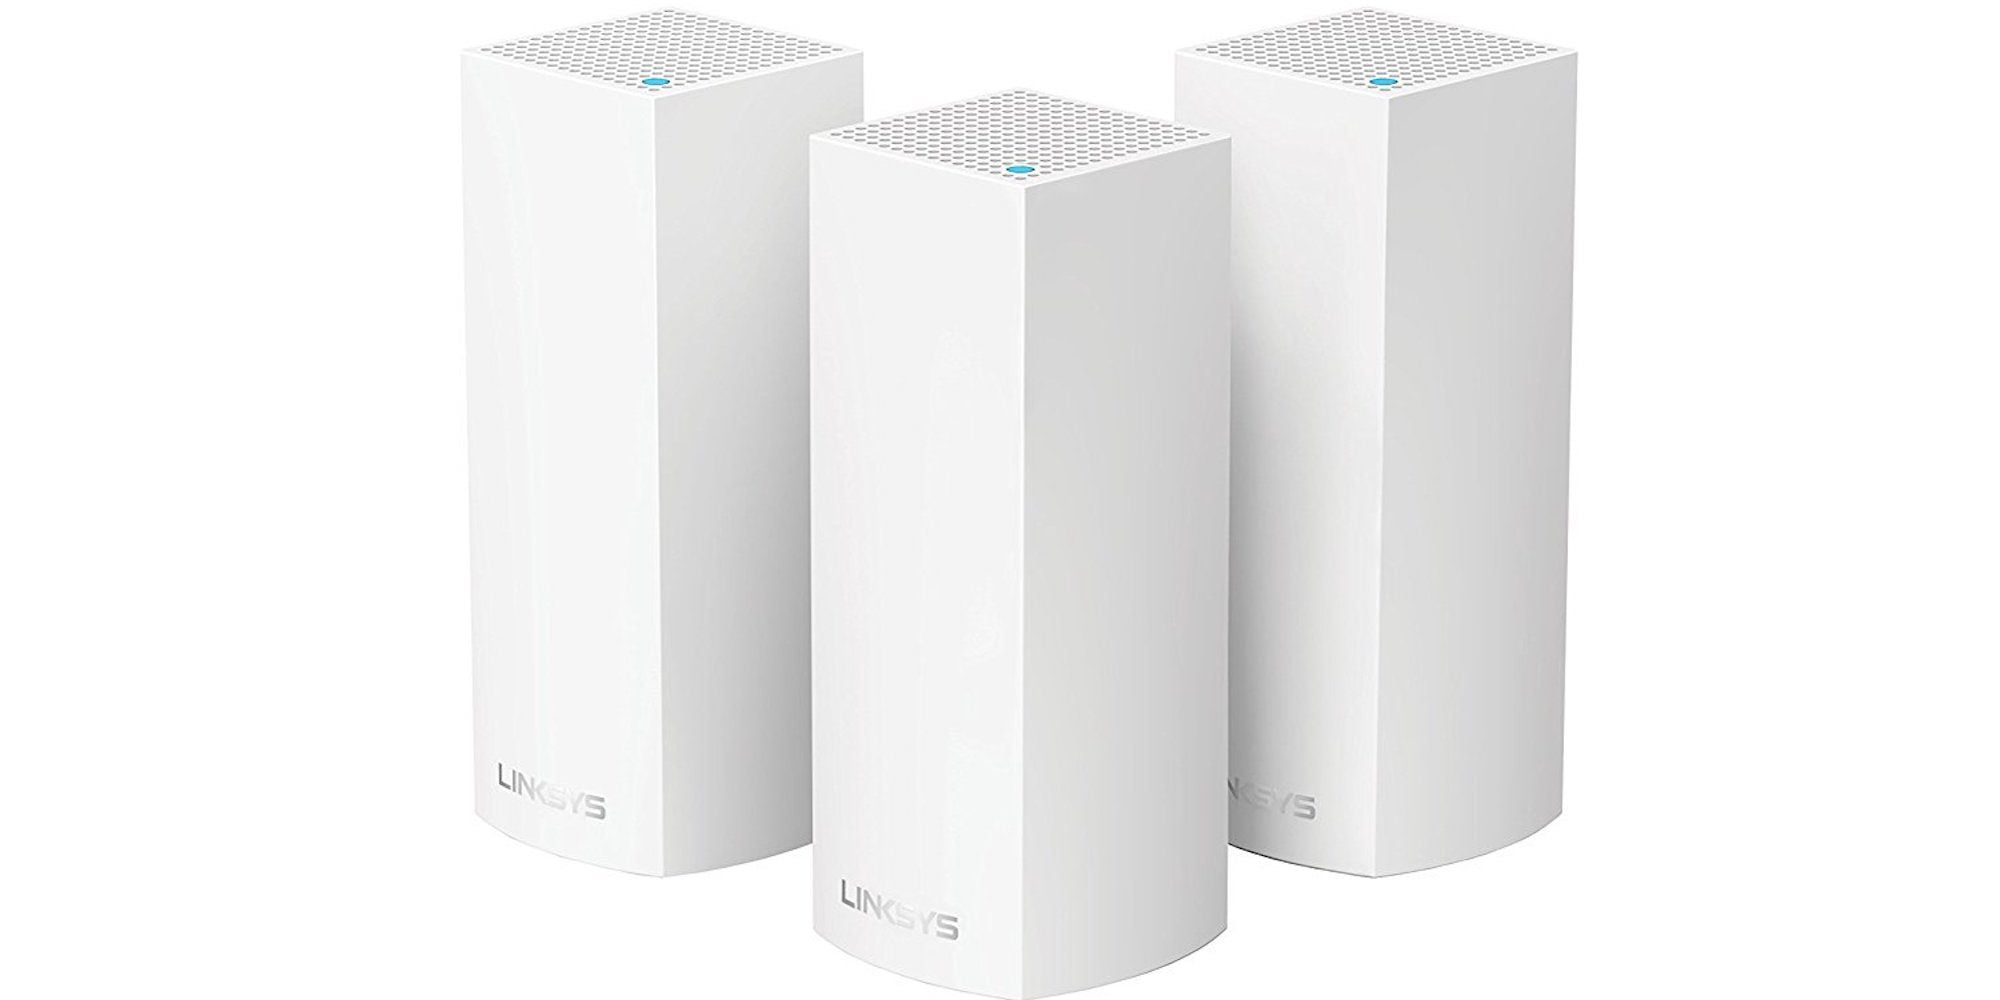 Linksys says HomeKit support is coming to Velop routers 'in the next several days'